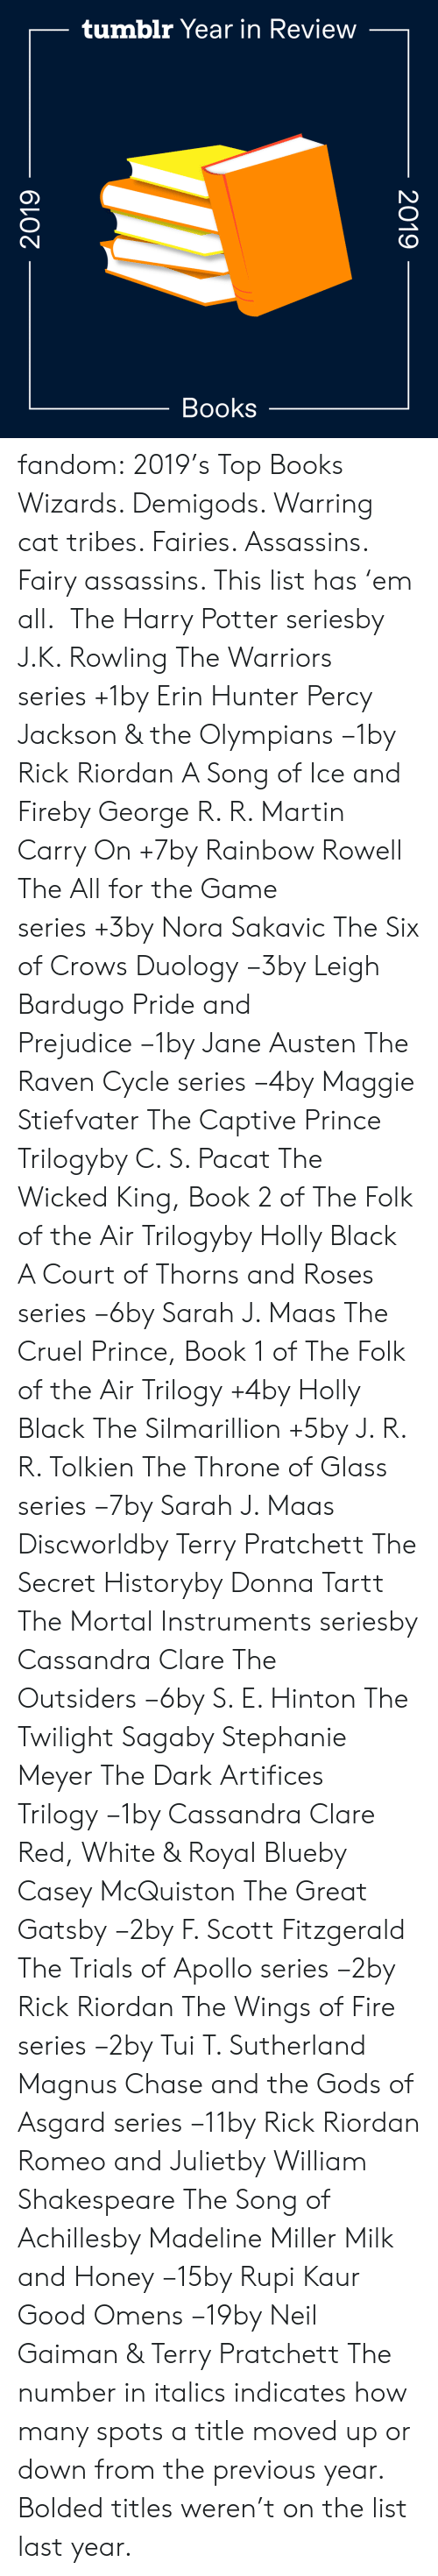 Martin: tumblr Year in Review  Books  2019  2019 fandom:  2019's Top Books  Wizards. Demigods. Warring cat tribes. Fairies. Assassins. Fairy assassins. This list has 'em all.   The Harry Potter seriesby J.K. Rowling  The Warriors series +1by Erin Hunter  Percy Jackson & the Olympians −1by Rick Riordan  A Song of Ice and Fireby George R. R. Martin  Carry On +7by Rainbow Rowell  The All for the Game series +3by Nora Sakavic  The Six of Crows Duology −3by Leigh Bardugo  Pride and Prejudice −1by Jane Austen  The Raven Cycle series −4by Maggie Stiefvater  The Captive Prince Trilogyby C. S. Pacat  The Wicked King, Book 2 of The Folk of the Air Trilogyby Holly Black  A Court of Thorns and Roses series −6by Sarah J. Maas  The Cruel Prince, Book 1 of The Folk of the Air Trilogy +4by Holly Black  The Silmarillion +5by J. R. R. Tolkien  The Throne of Glass series −7by Sarah J. Maas  Discworldby Terry Pratchett  The Secret Historyby Donna Tartt  The Mortal Instruments seriesby Cassandra Clare  The Outsiders −6by S. E. Hinton  The Twilight Sagaby Stephanie Meyer  The Dark Artifices Trilogy −1by Cassandra Clare  Red, White & Royal Blueby Casey McQuiston  The Great Gatsby −2by F. Scott Fitzgerald  The Trials of Apollo series −2by Rick Riordan  The Wings of Fire series −2by Tui T. Sutherland  Magnus Chase and the Gods of Asgard series −11by Rick Riordan  Romeo and Julietby William Shakespeare  The Song of Achillesby Madeline Miller  Milk and Honey −15by Rupi Kaur  Good Omens −19by Neil Gaiman & Terry Pratchett The number in italics indicates how many spots a title moved up or down from the previous year. Bolded titles weren't on the list last year.